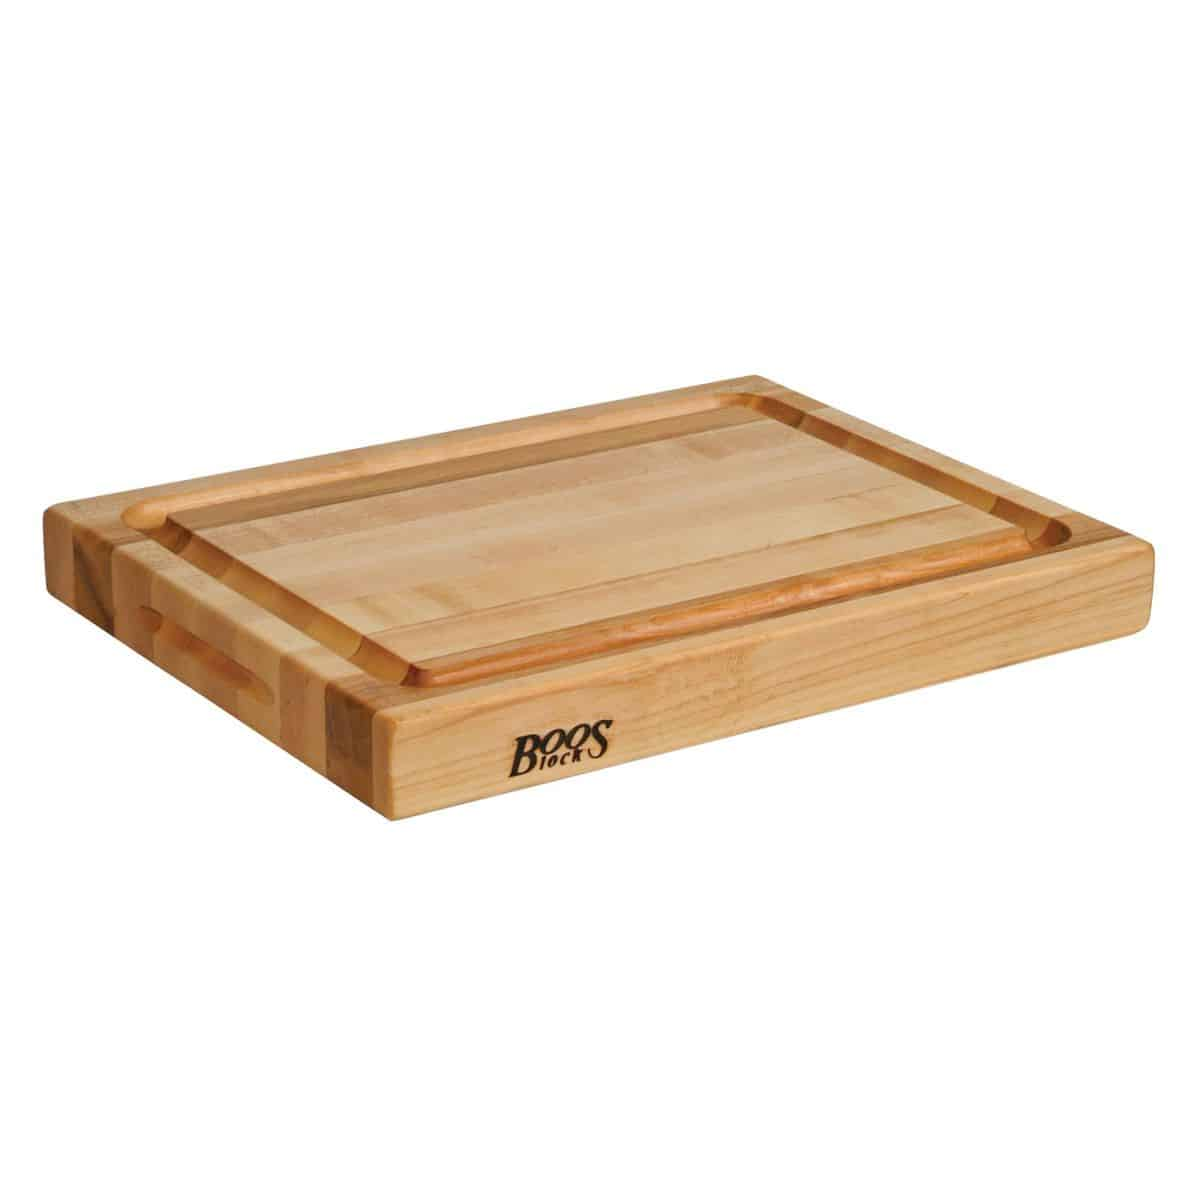 "John Boos & Co. Maple Edge-Grain Cutting Board with Deep Groove, 20"" x 15"" x 2¼"""